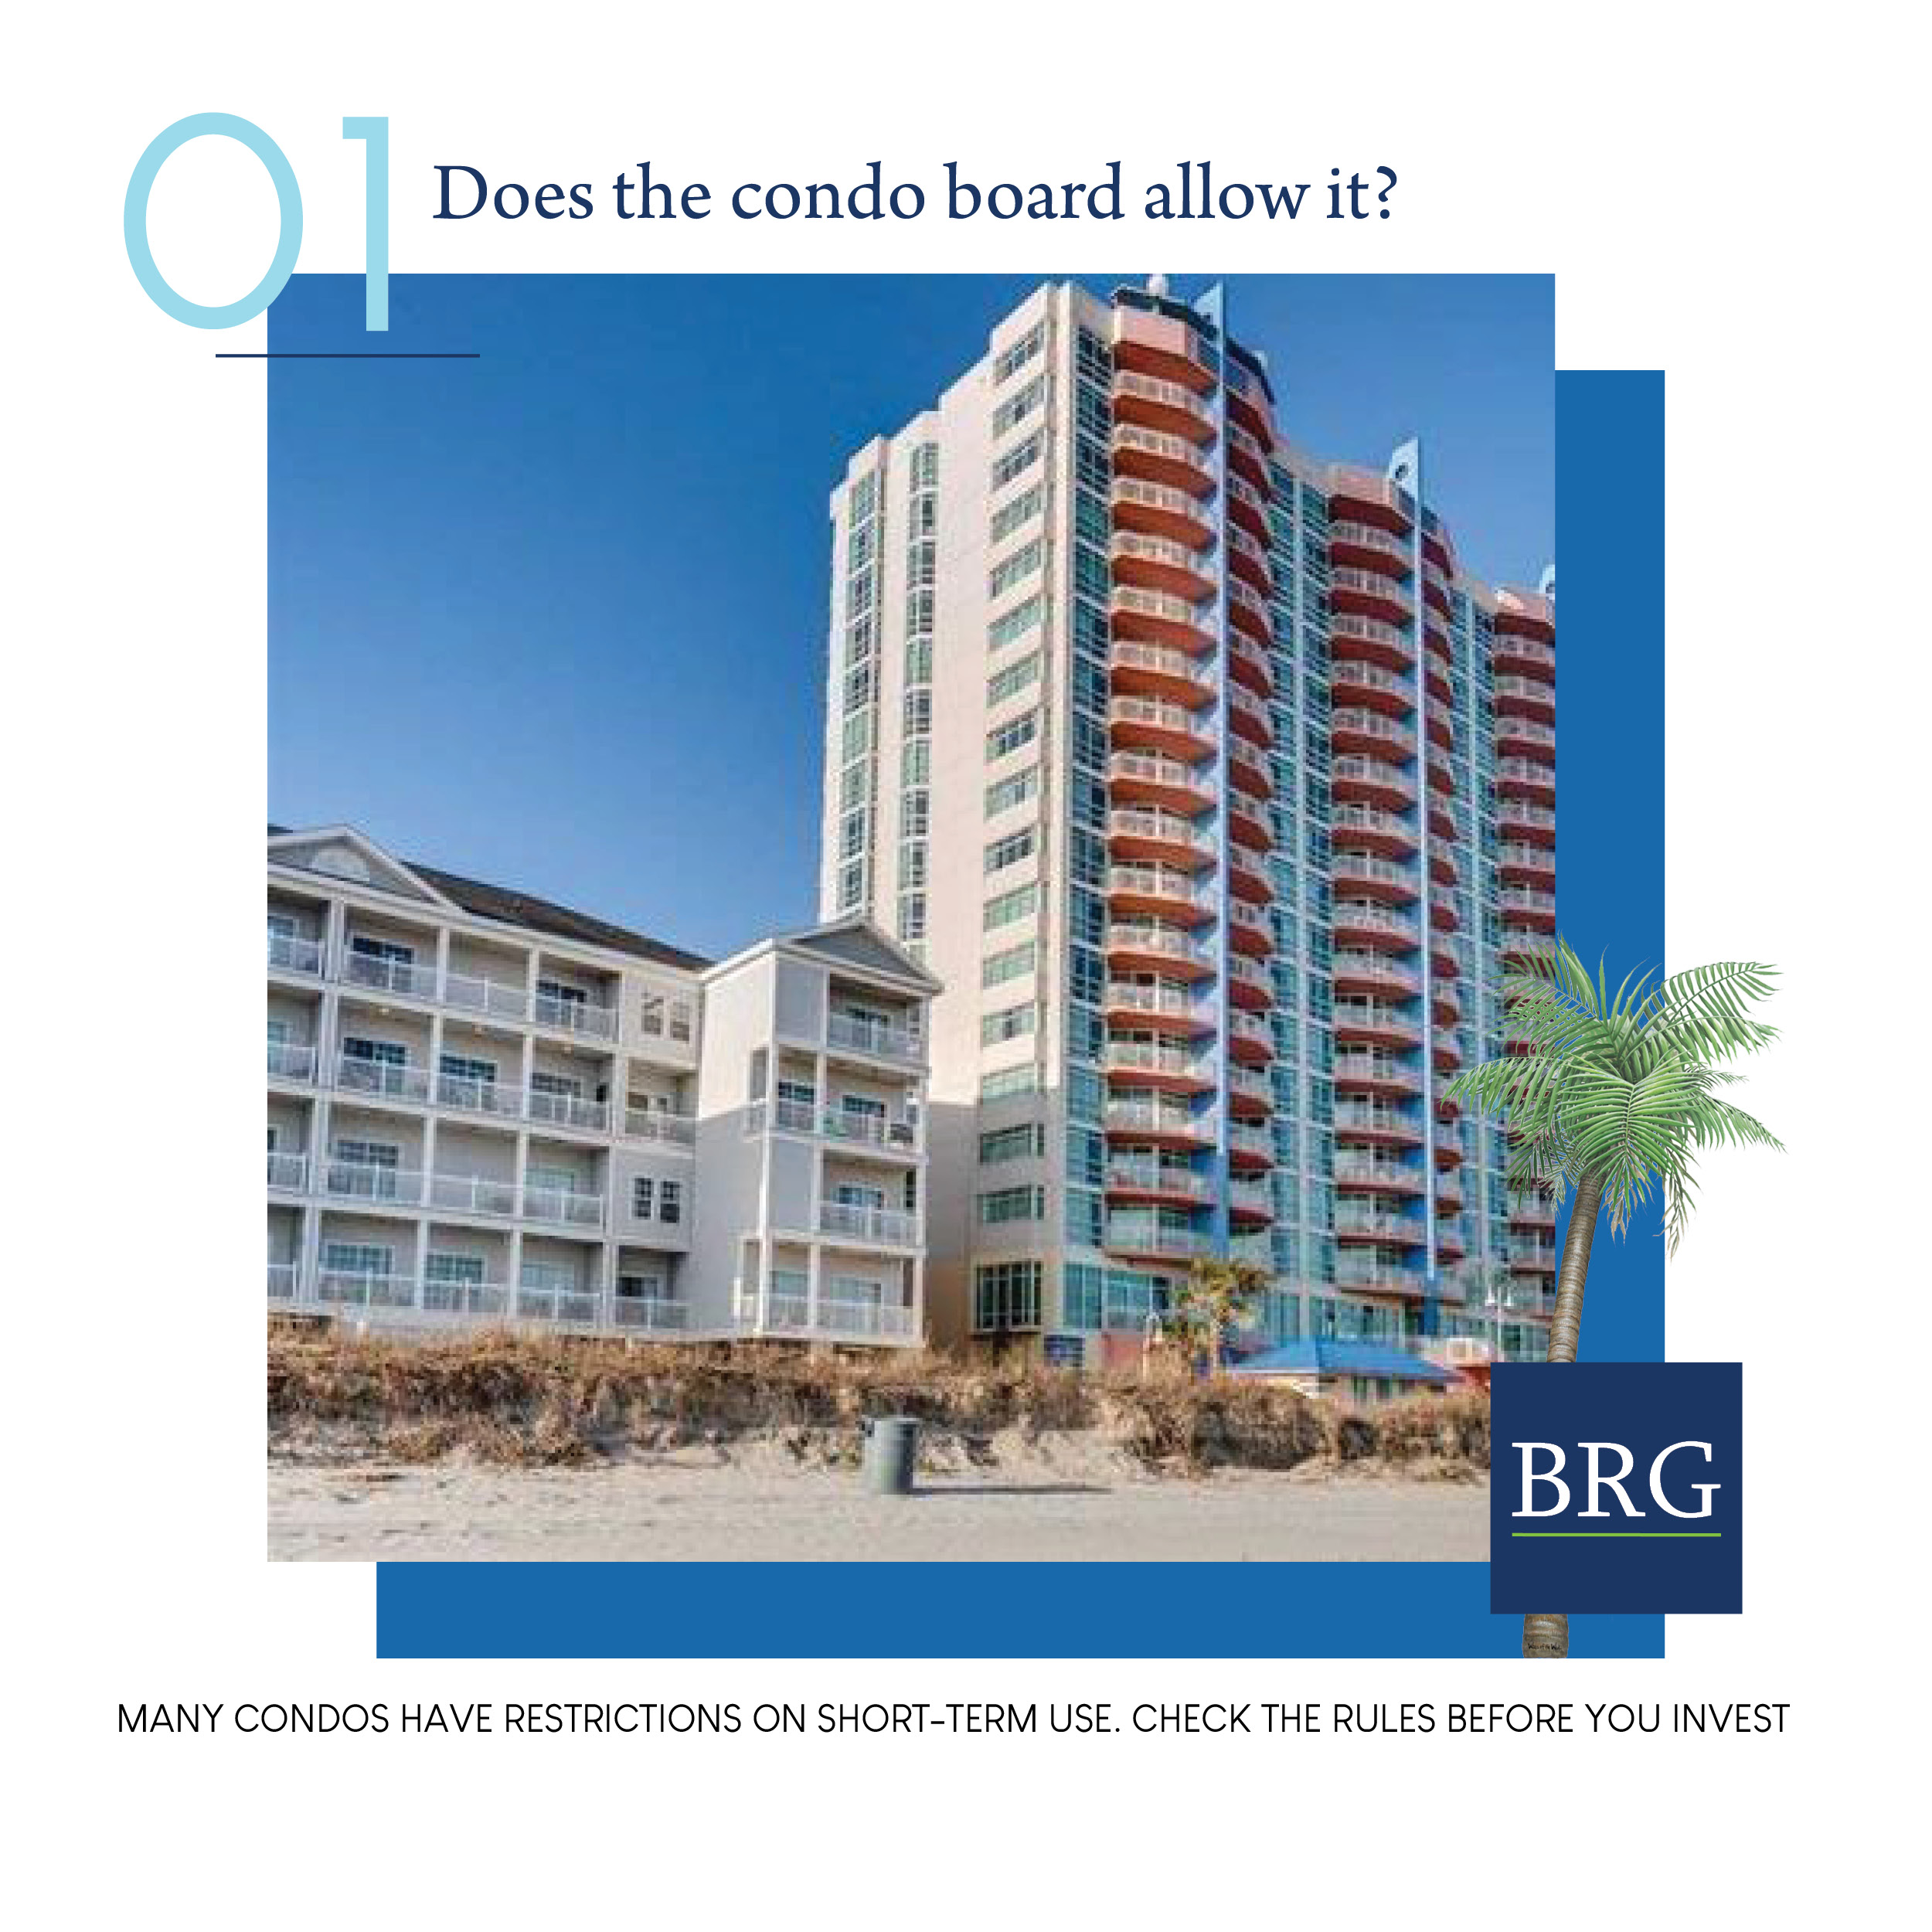 Picture of oceanfront condo building